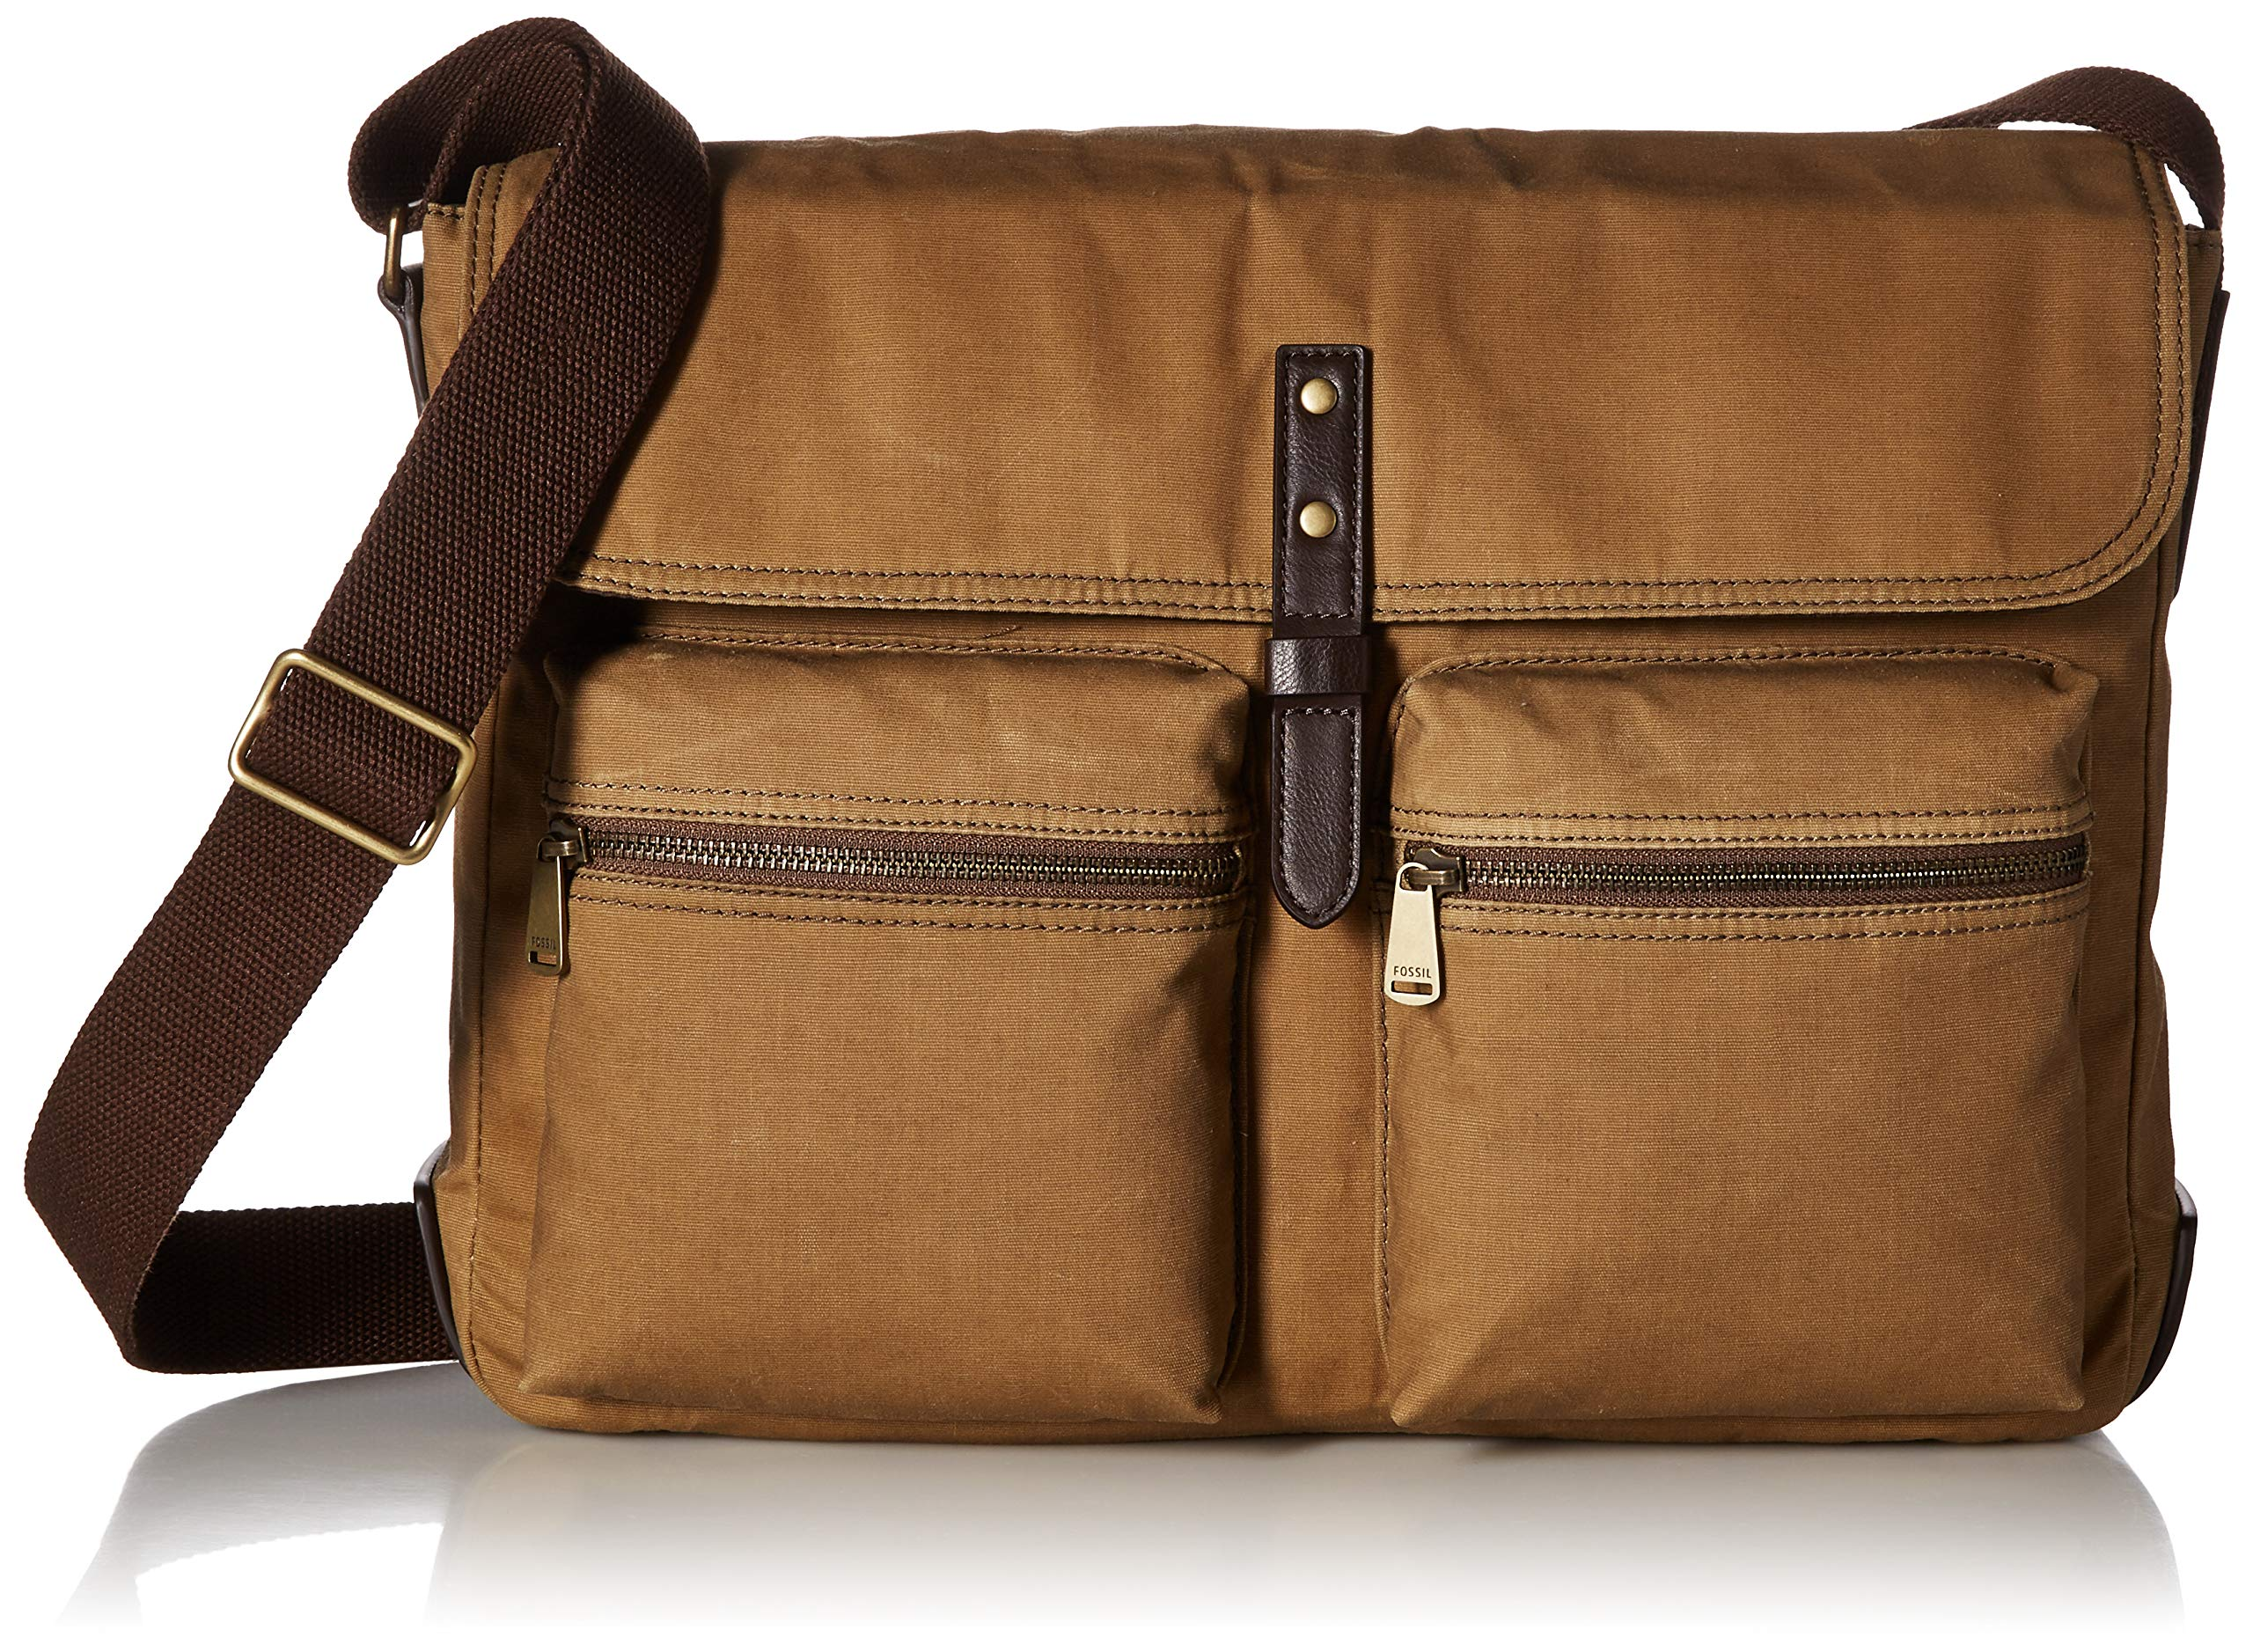 Fossil Men's Buckner Laptop Messenger Bag, Brown, One Size